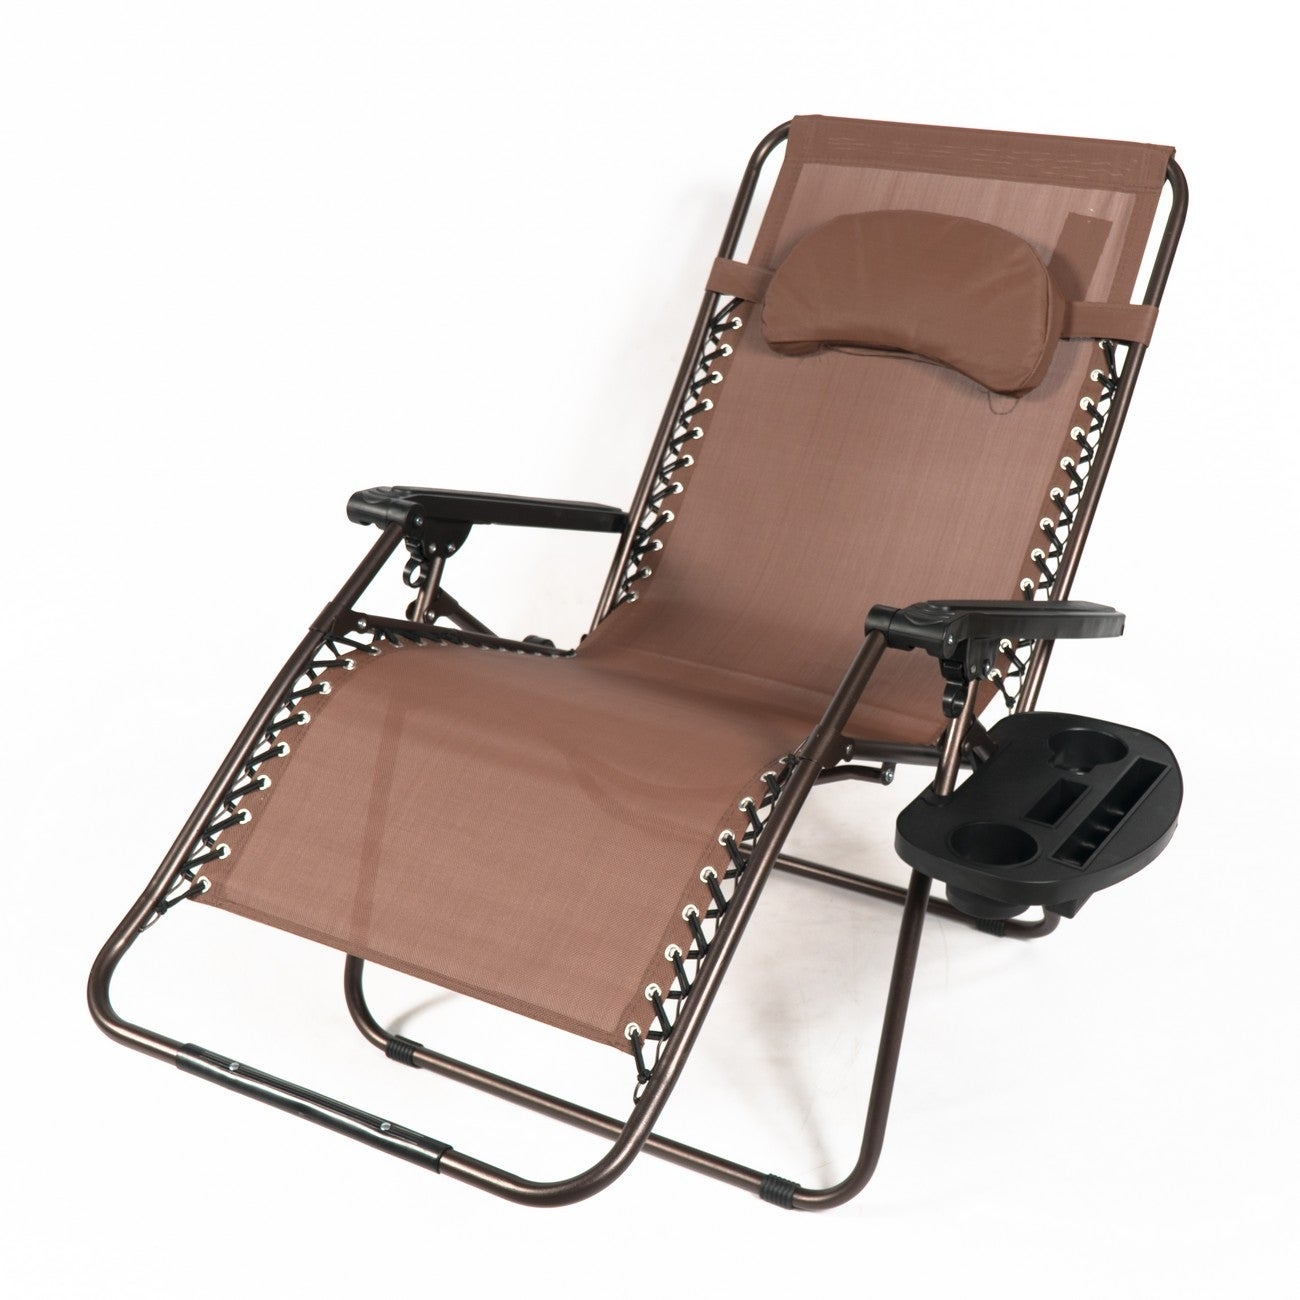 Belleze Xl Oversized Zero Gravity Chair Recliner Adjustable Lounge Padded With Pillow Drink Cup Holder Brown